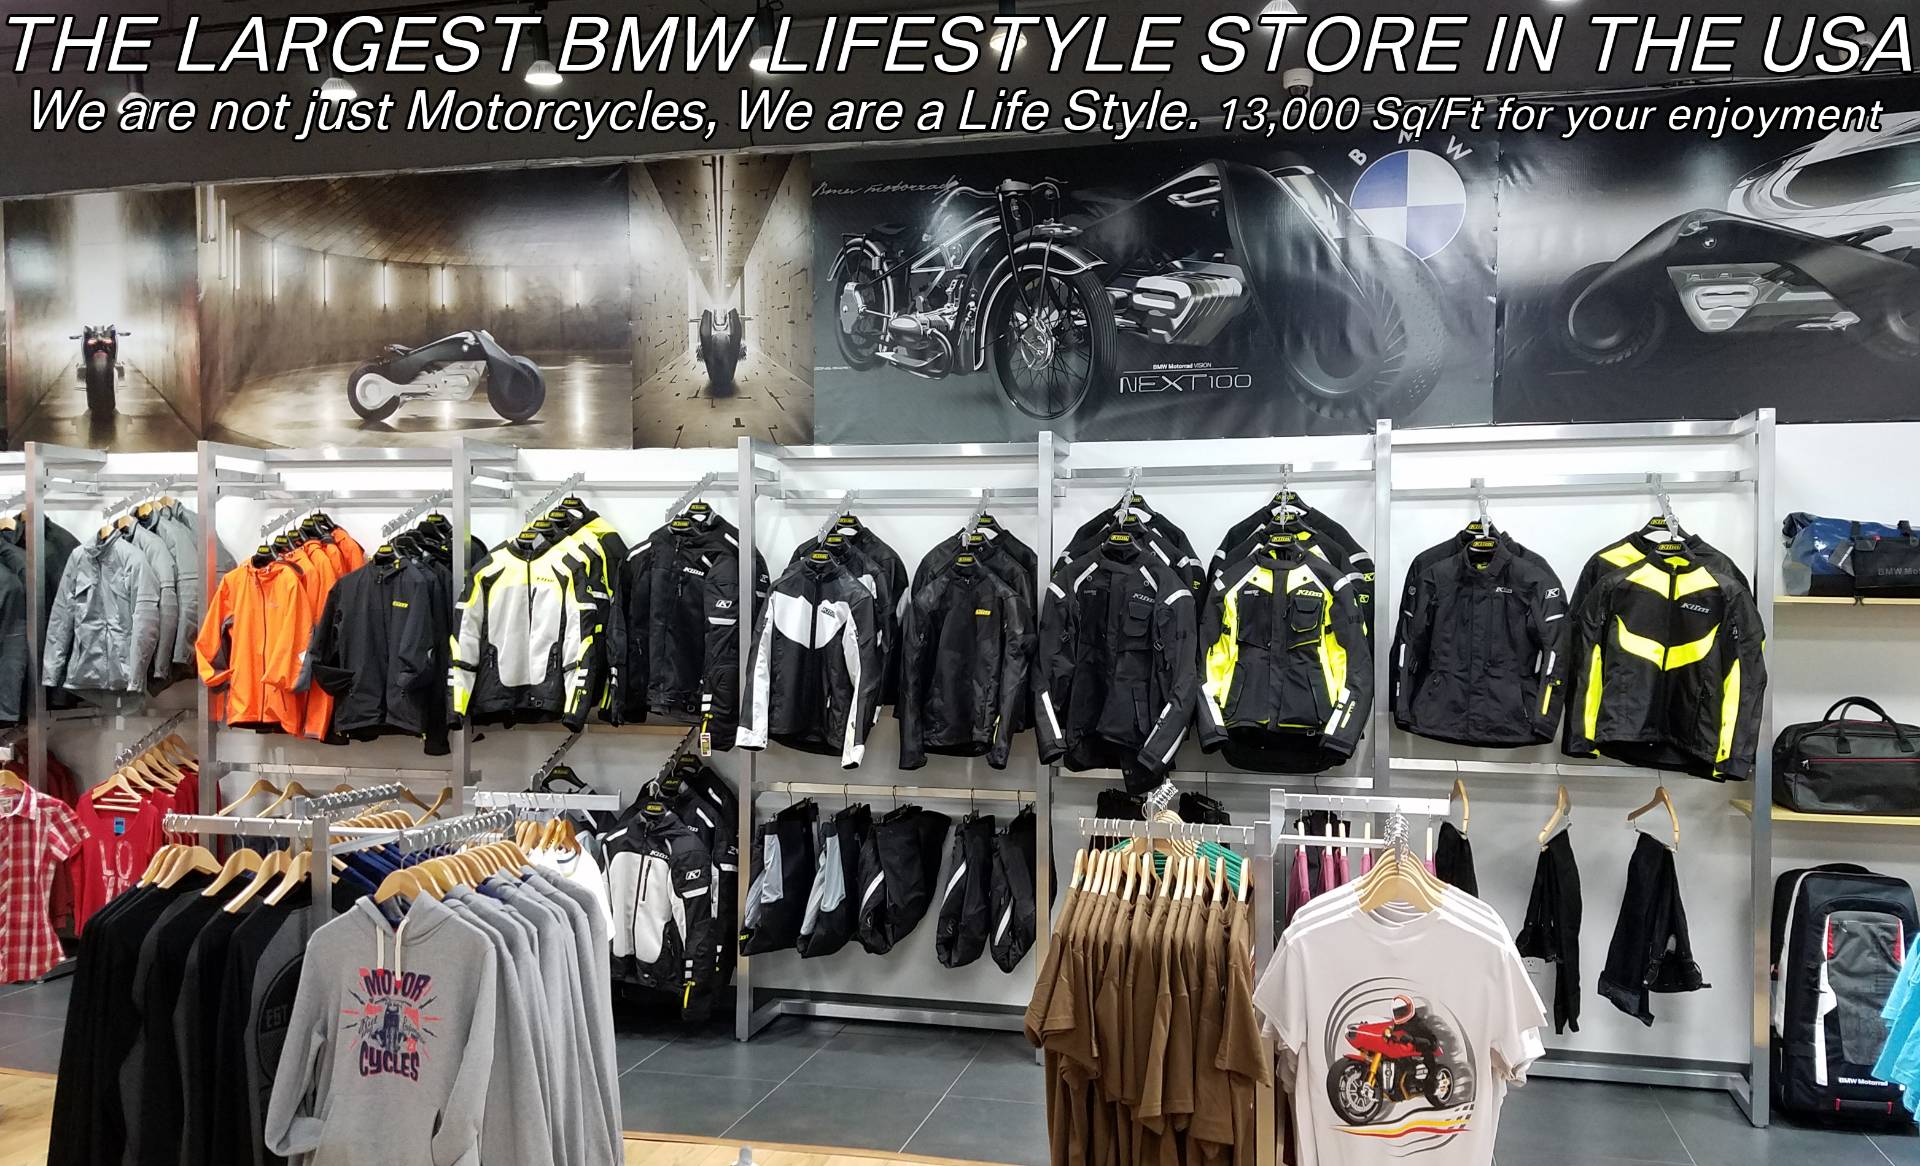 New 2019 BMW F 850 GSA for sale, BMW F 850GSA for sale, BMW Motorcycle F850GSA, new BMW 850 Adventure, Adventure. BMW Motorcycles of Miami, Motorcycles of Miami, Motorcycles Miami, New Motorcycles, Used Motorcycles, pre-owned. #BMWMotorcyclesOfMiami #MotorcyclesOfMiami #MotorcyclesMiami - Photo 50